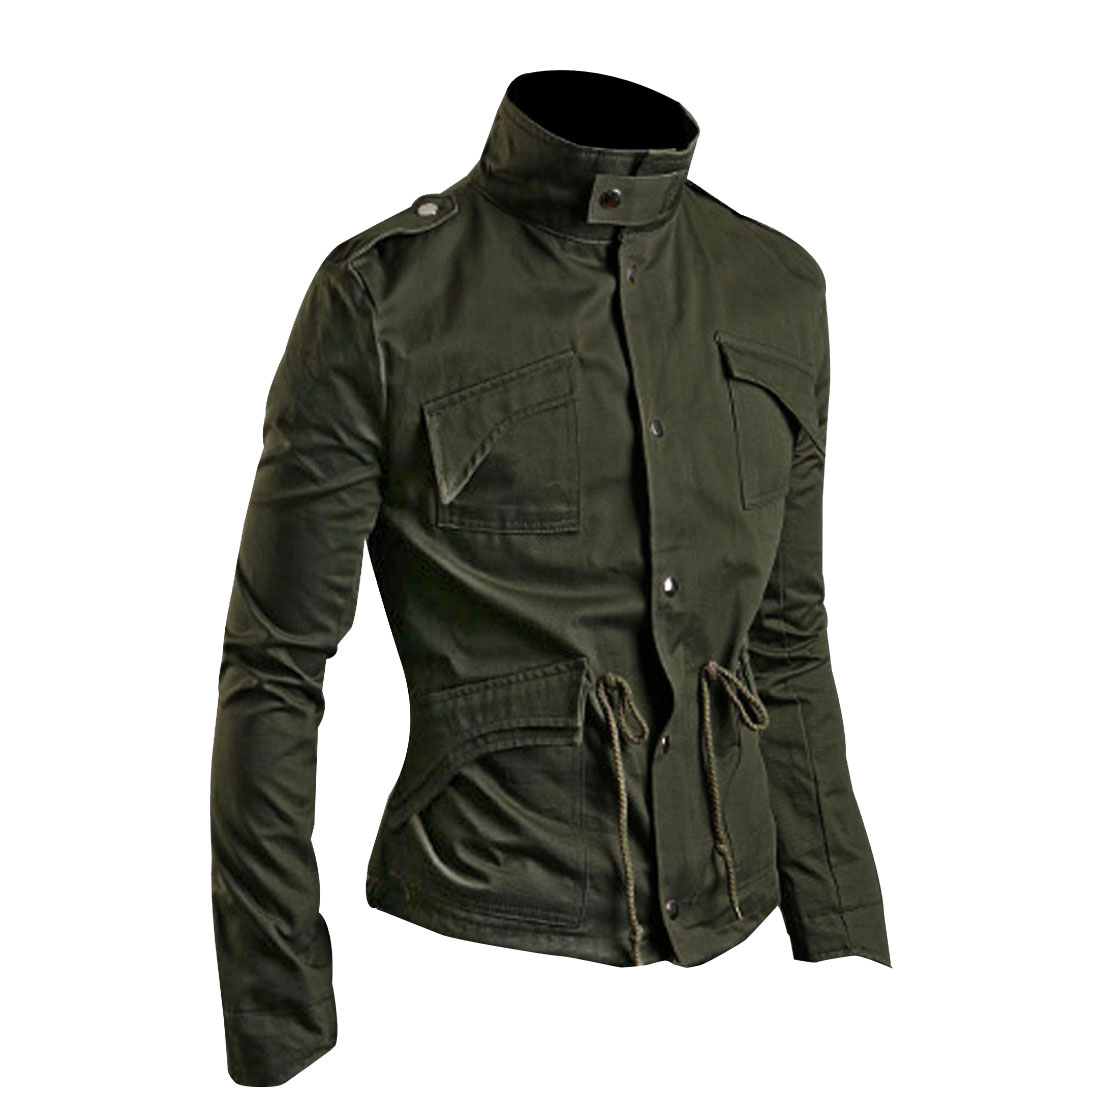 Men Olive Green Stylish Long Sleeve Stand Collar Four Pockets Zip Up Jacket M